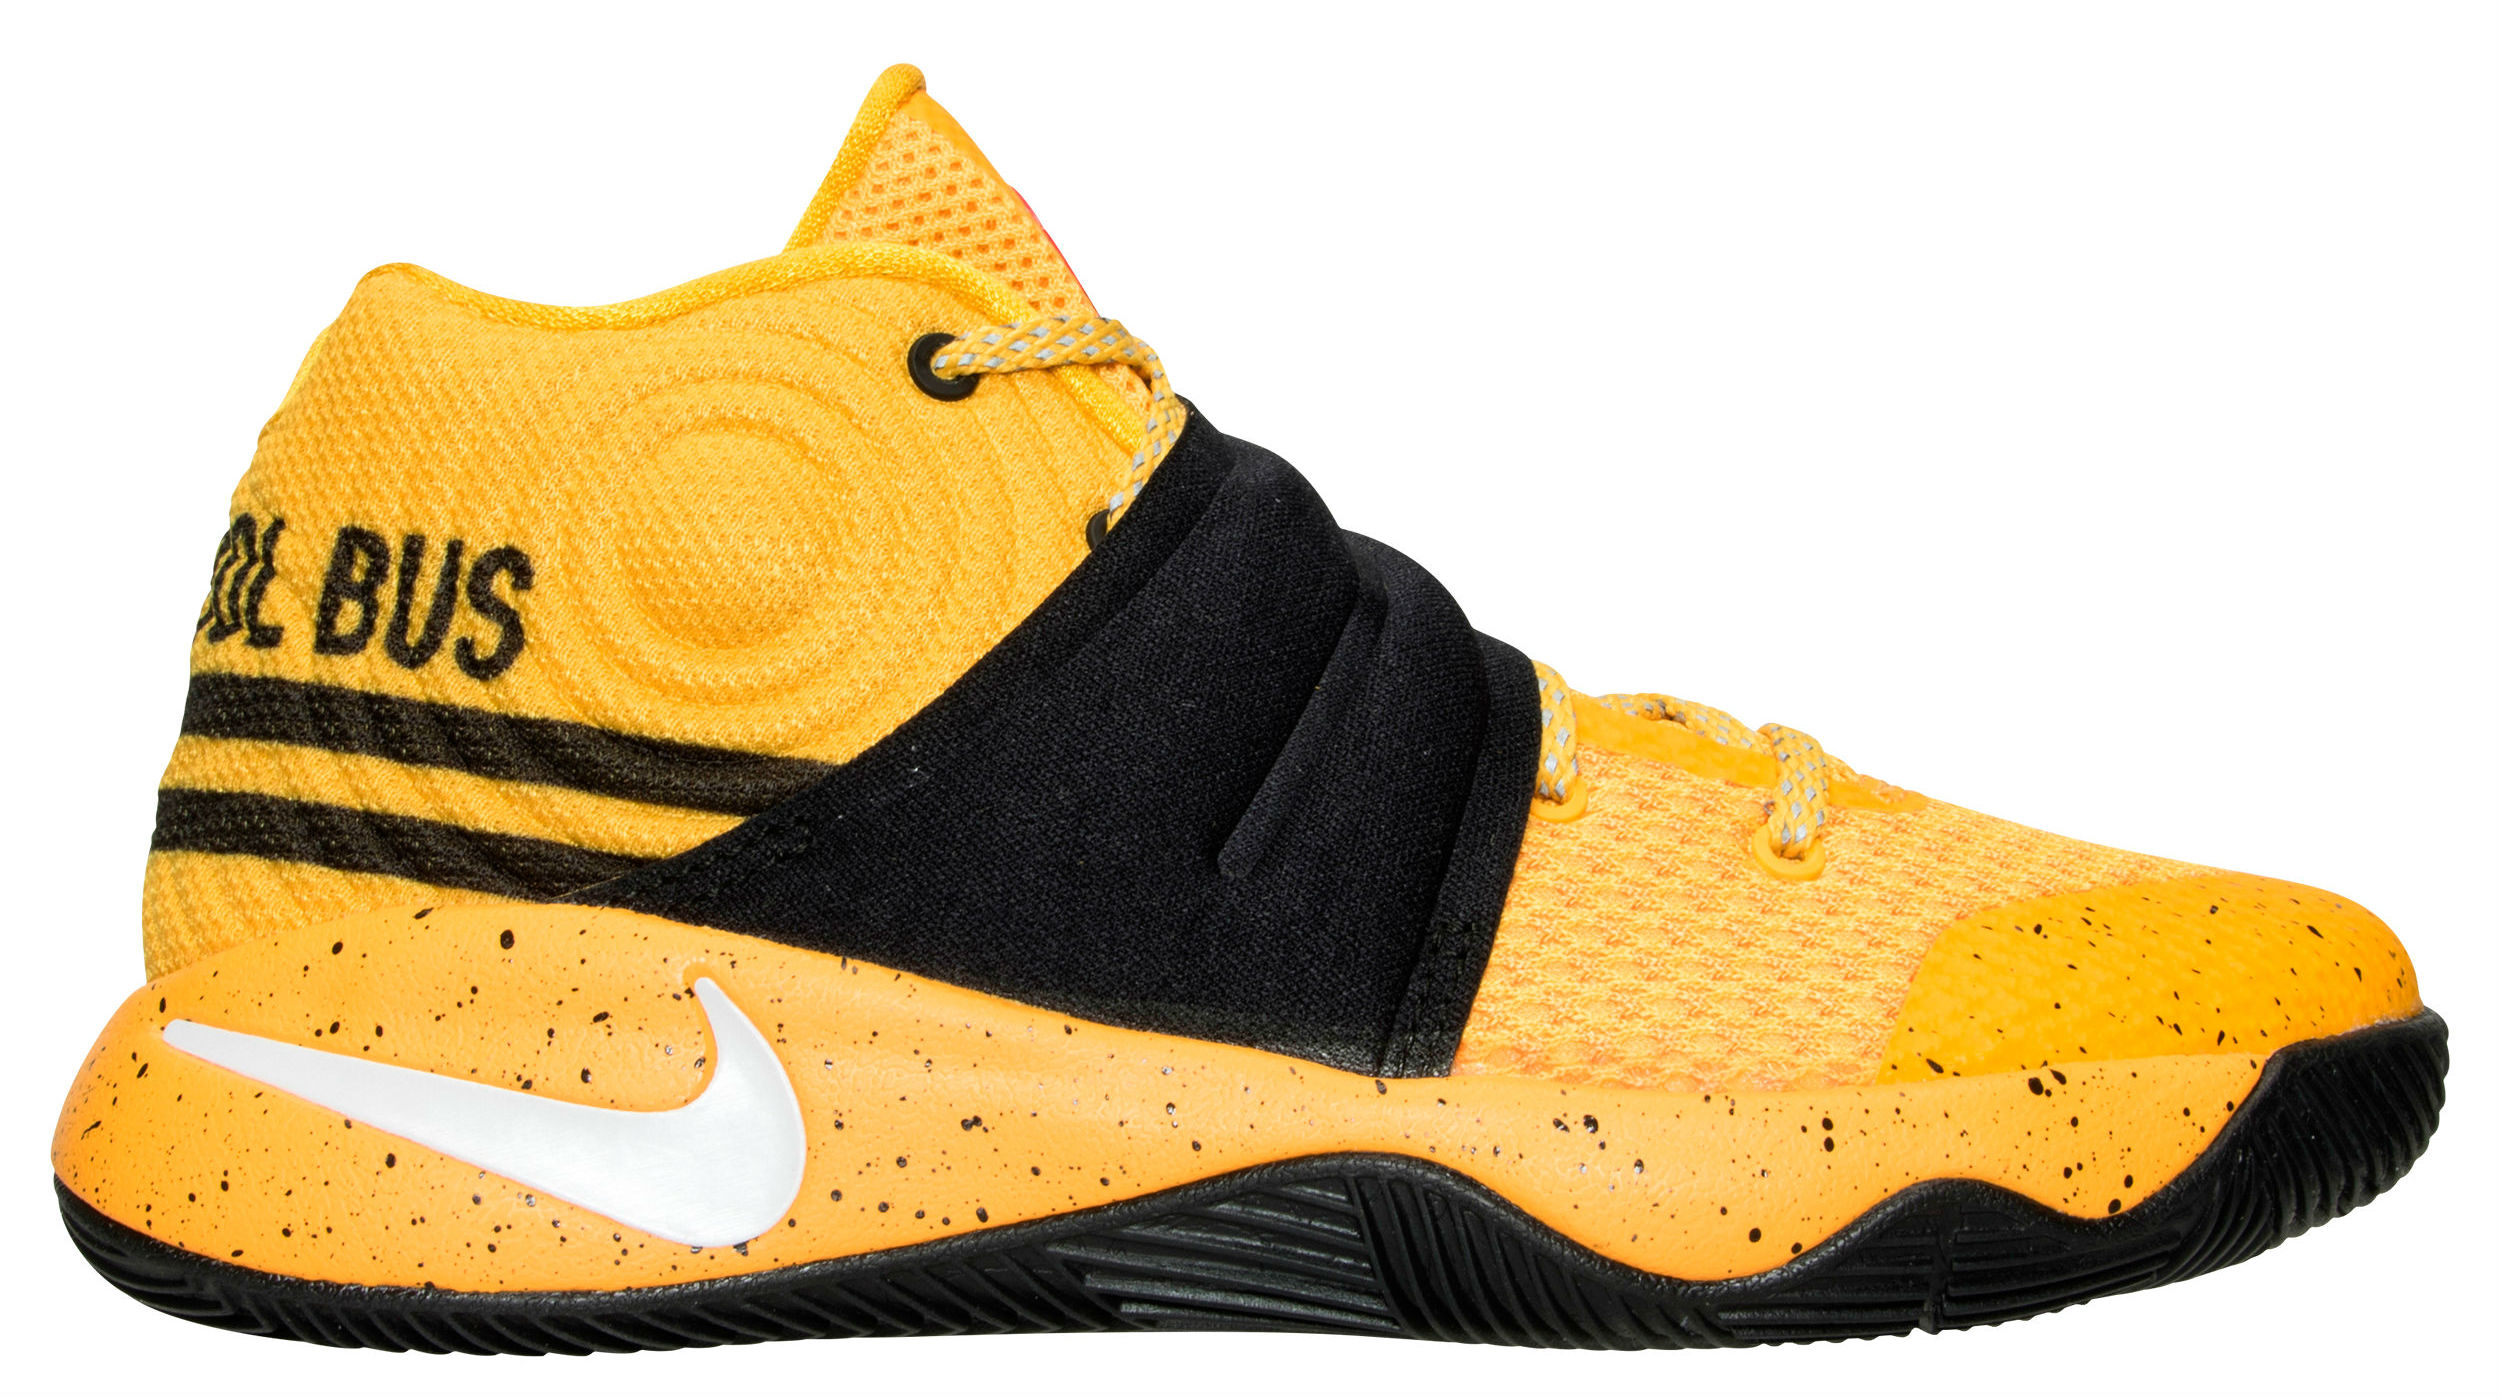 9b11cac70f4 School Bus Kyrie 2 Release Date Side 827280-700